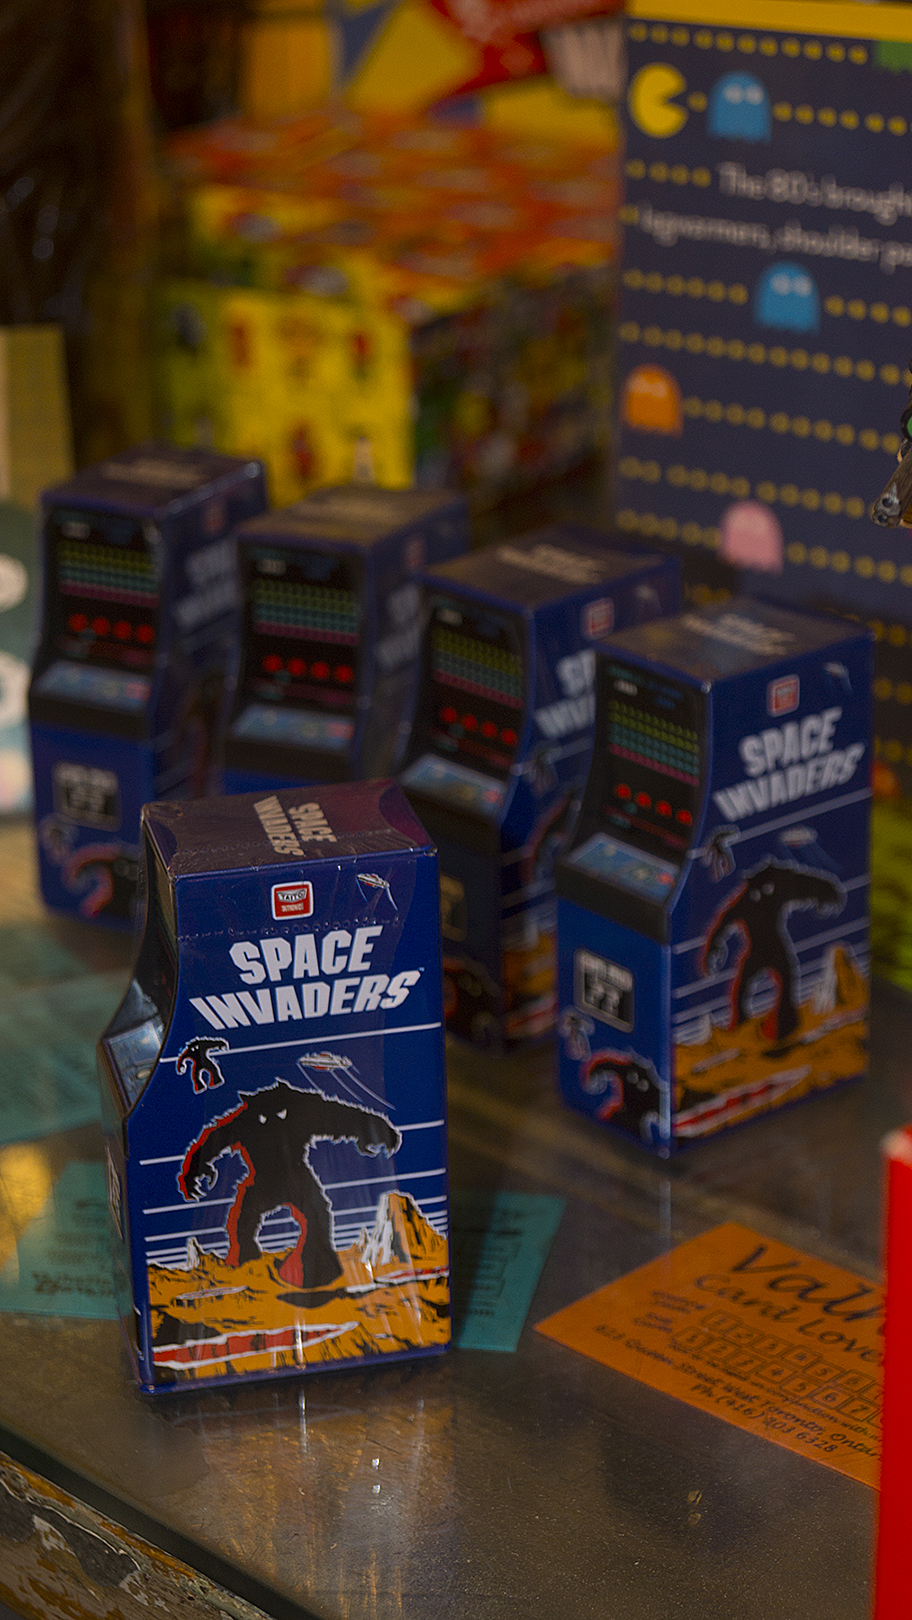 Image of Space Invaders candy